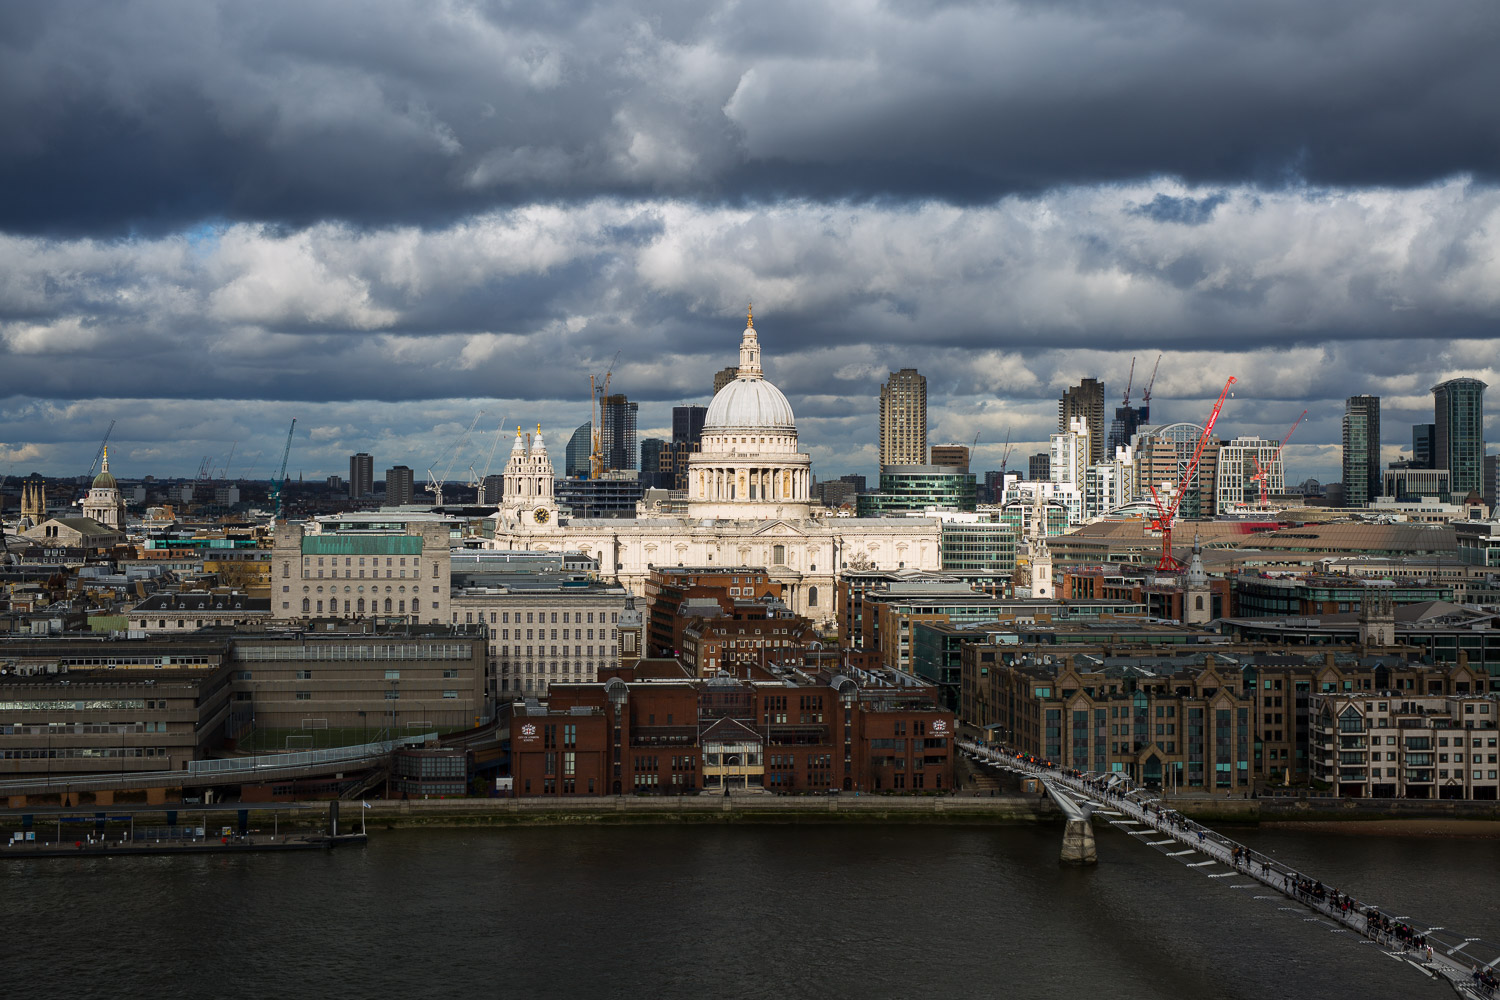 st_pauls_cathedral-tate_modern.jpg